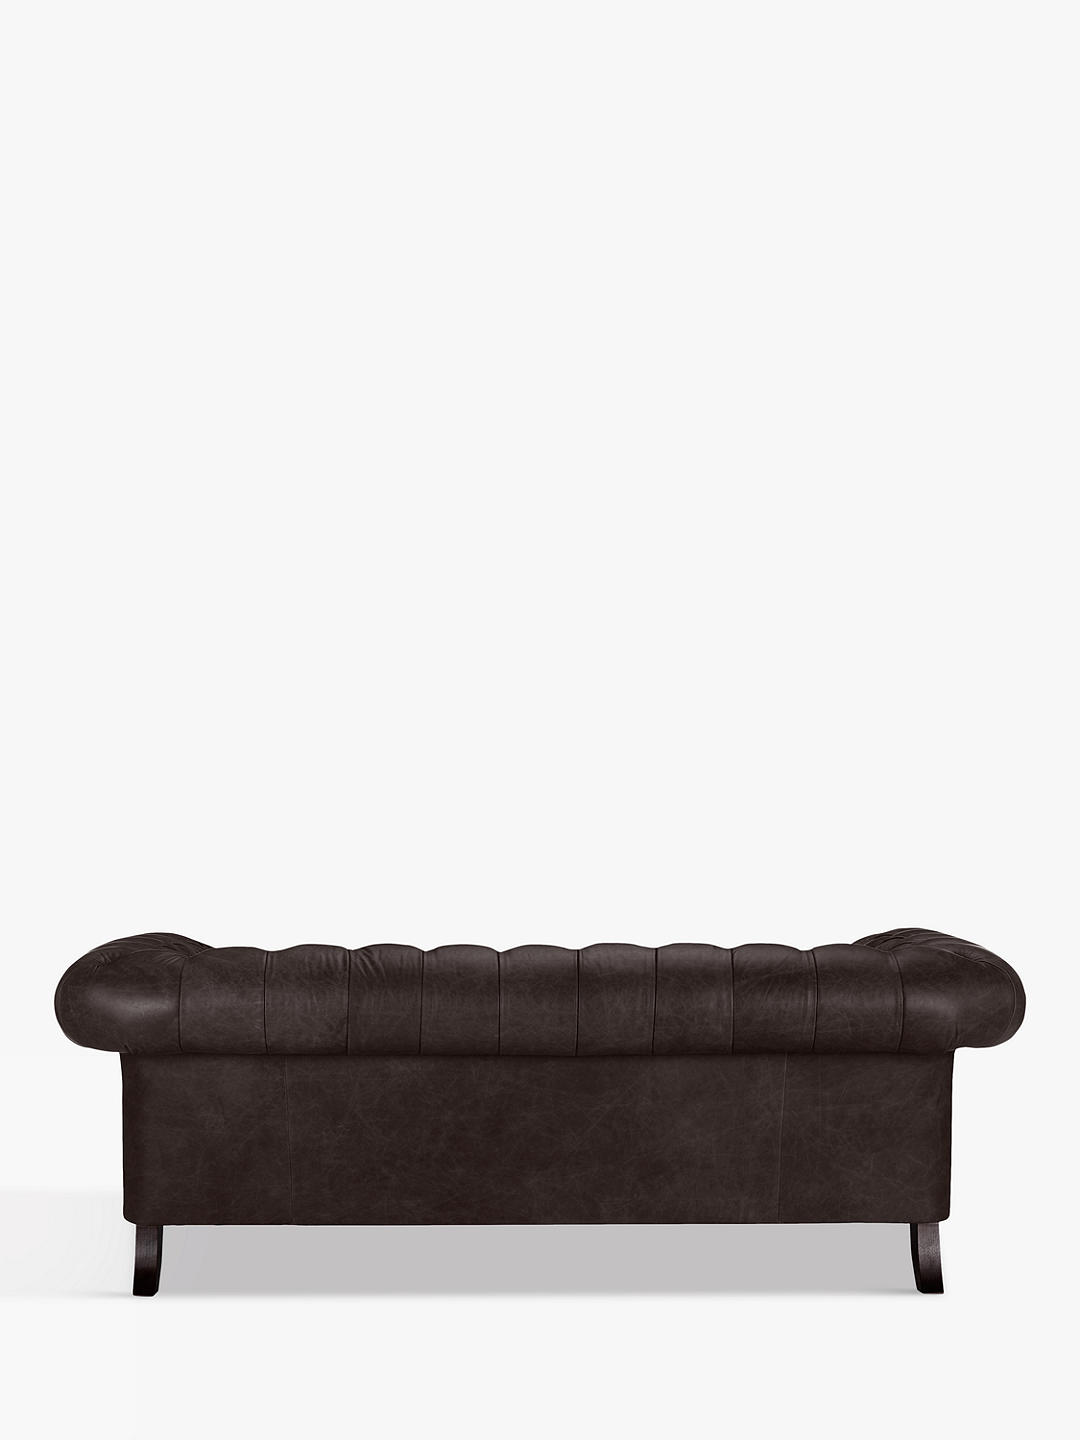 John Lewis & Partners Cromwell Chesterfield Grand 4 Seater Leather Sofa, Dark Leg, Demetra Charcoal